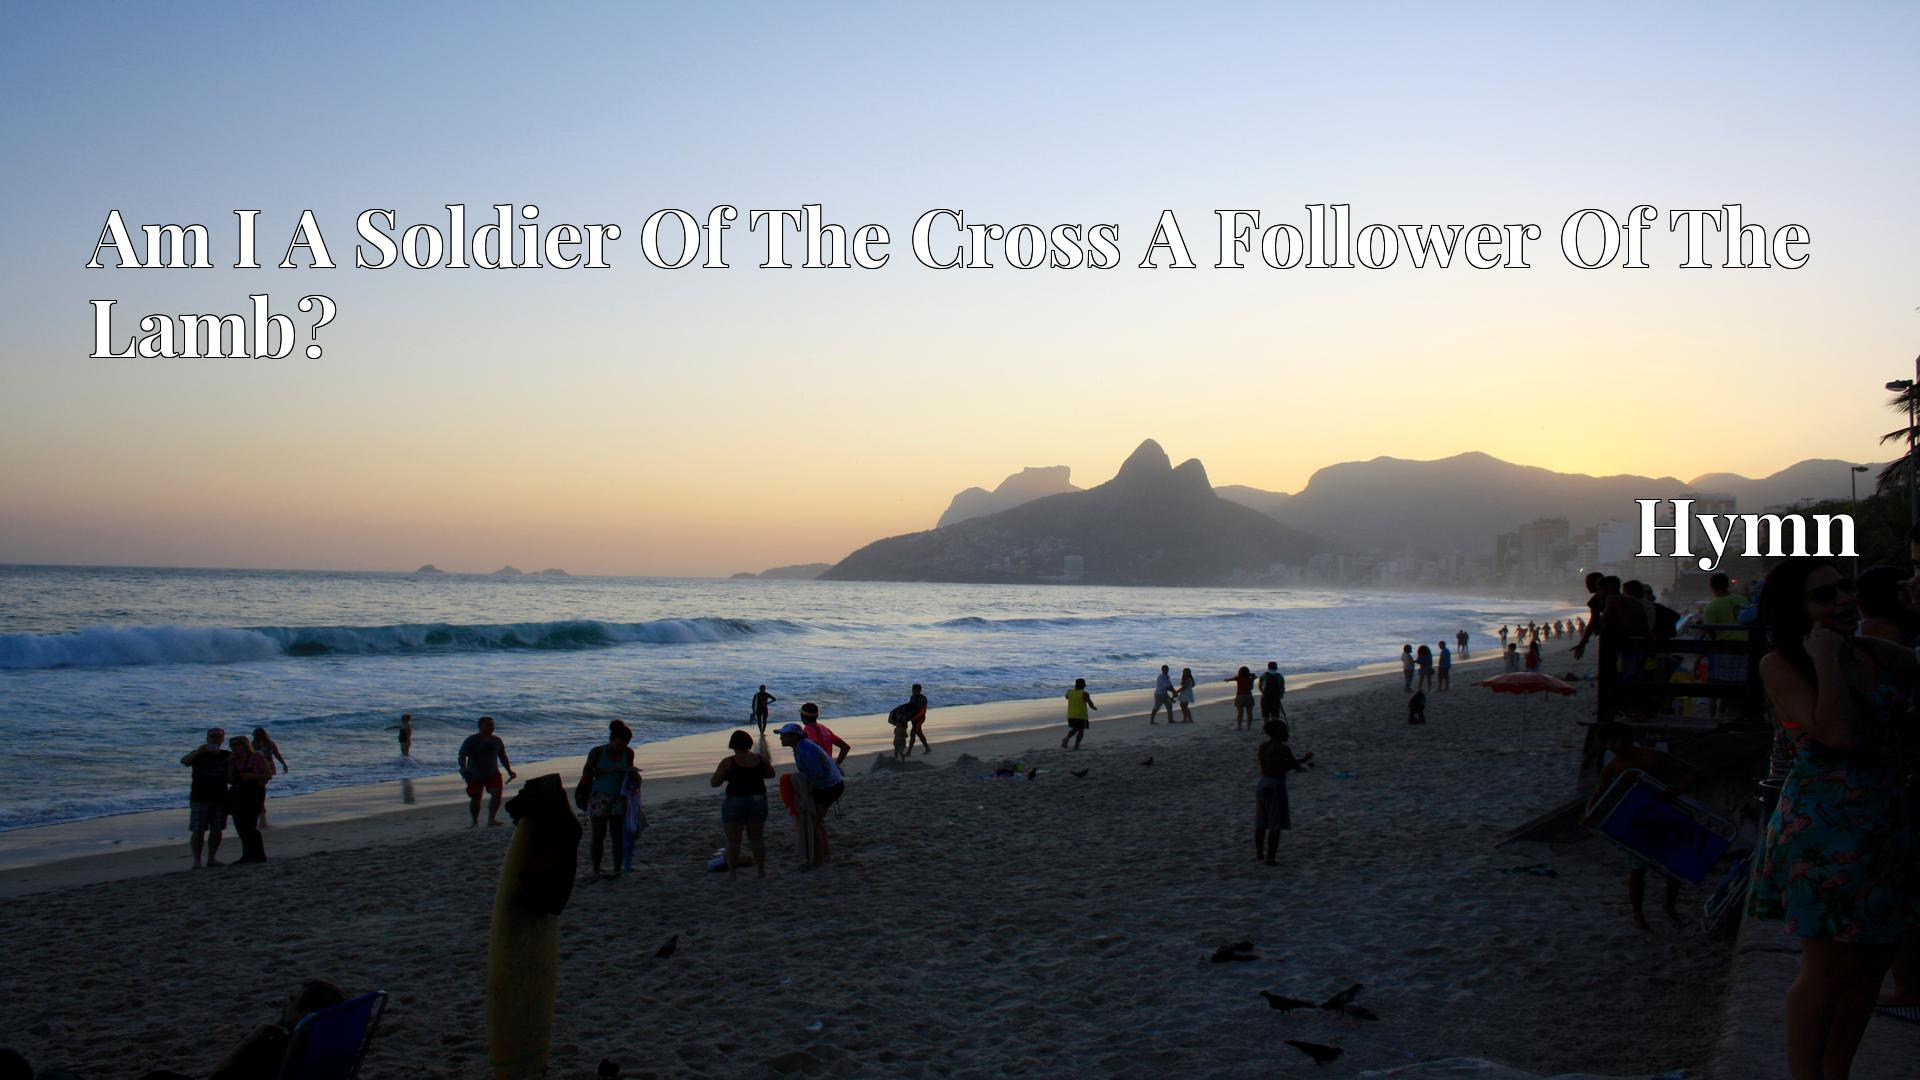 Am I A Soldier Of The Cross A Follower Of The Lamb? - Hymn